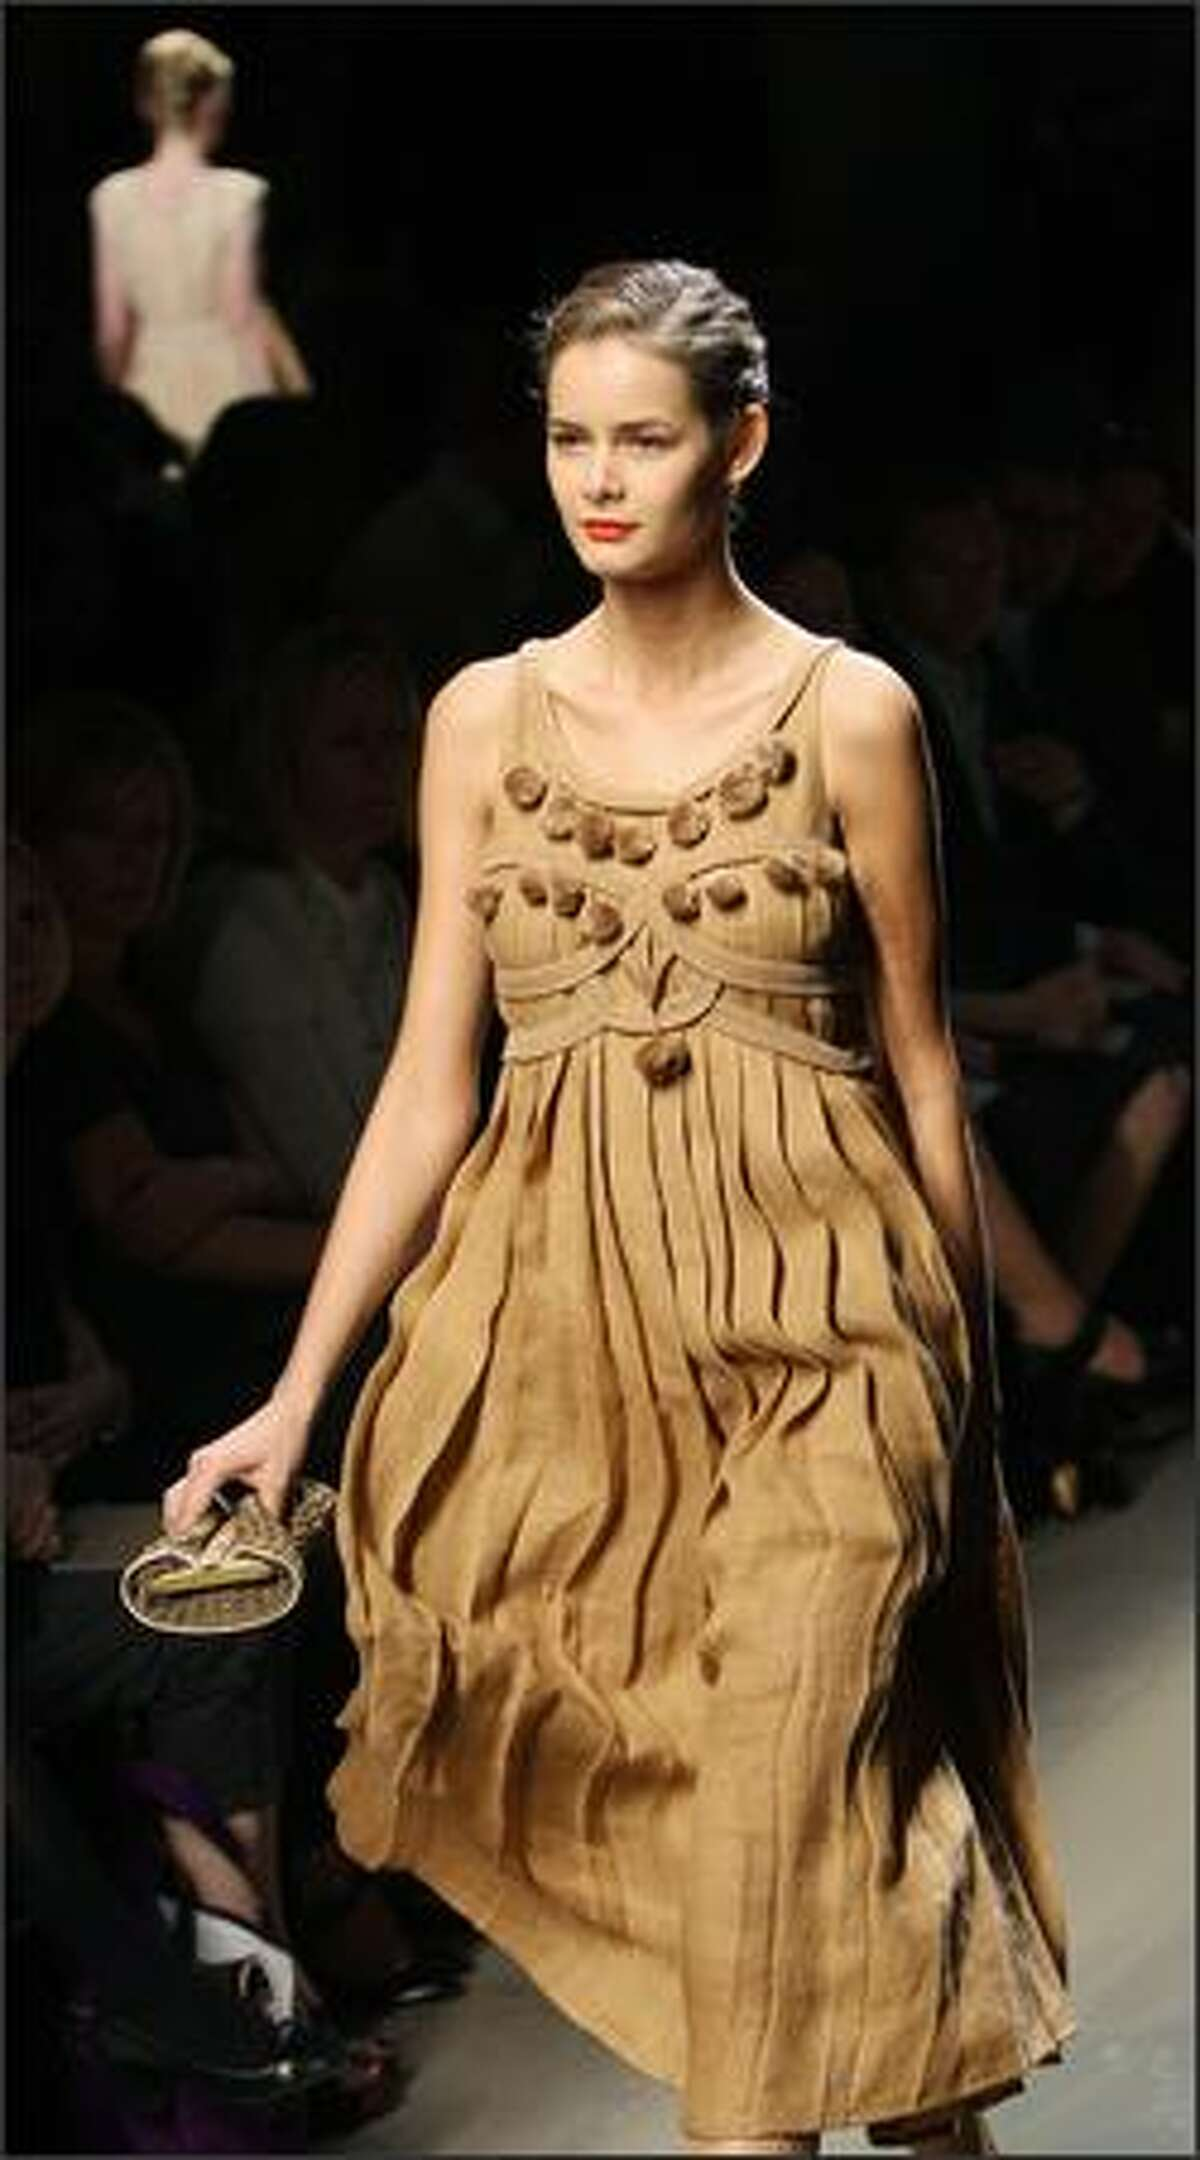 A model presents a creation by German designer Tomas Maier for Bottega Veneta during the spring/summer 2008 collections of the Milan ready-to-wear fashion shows.